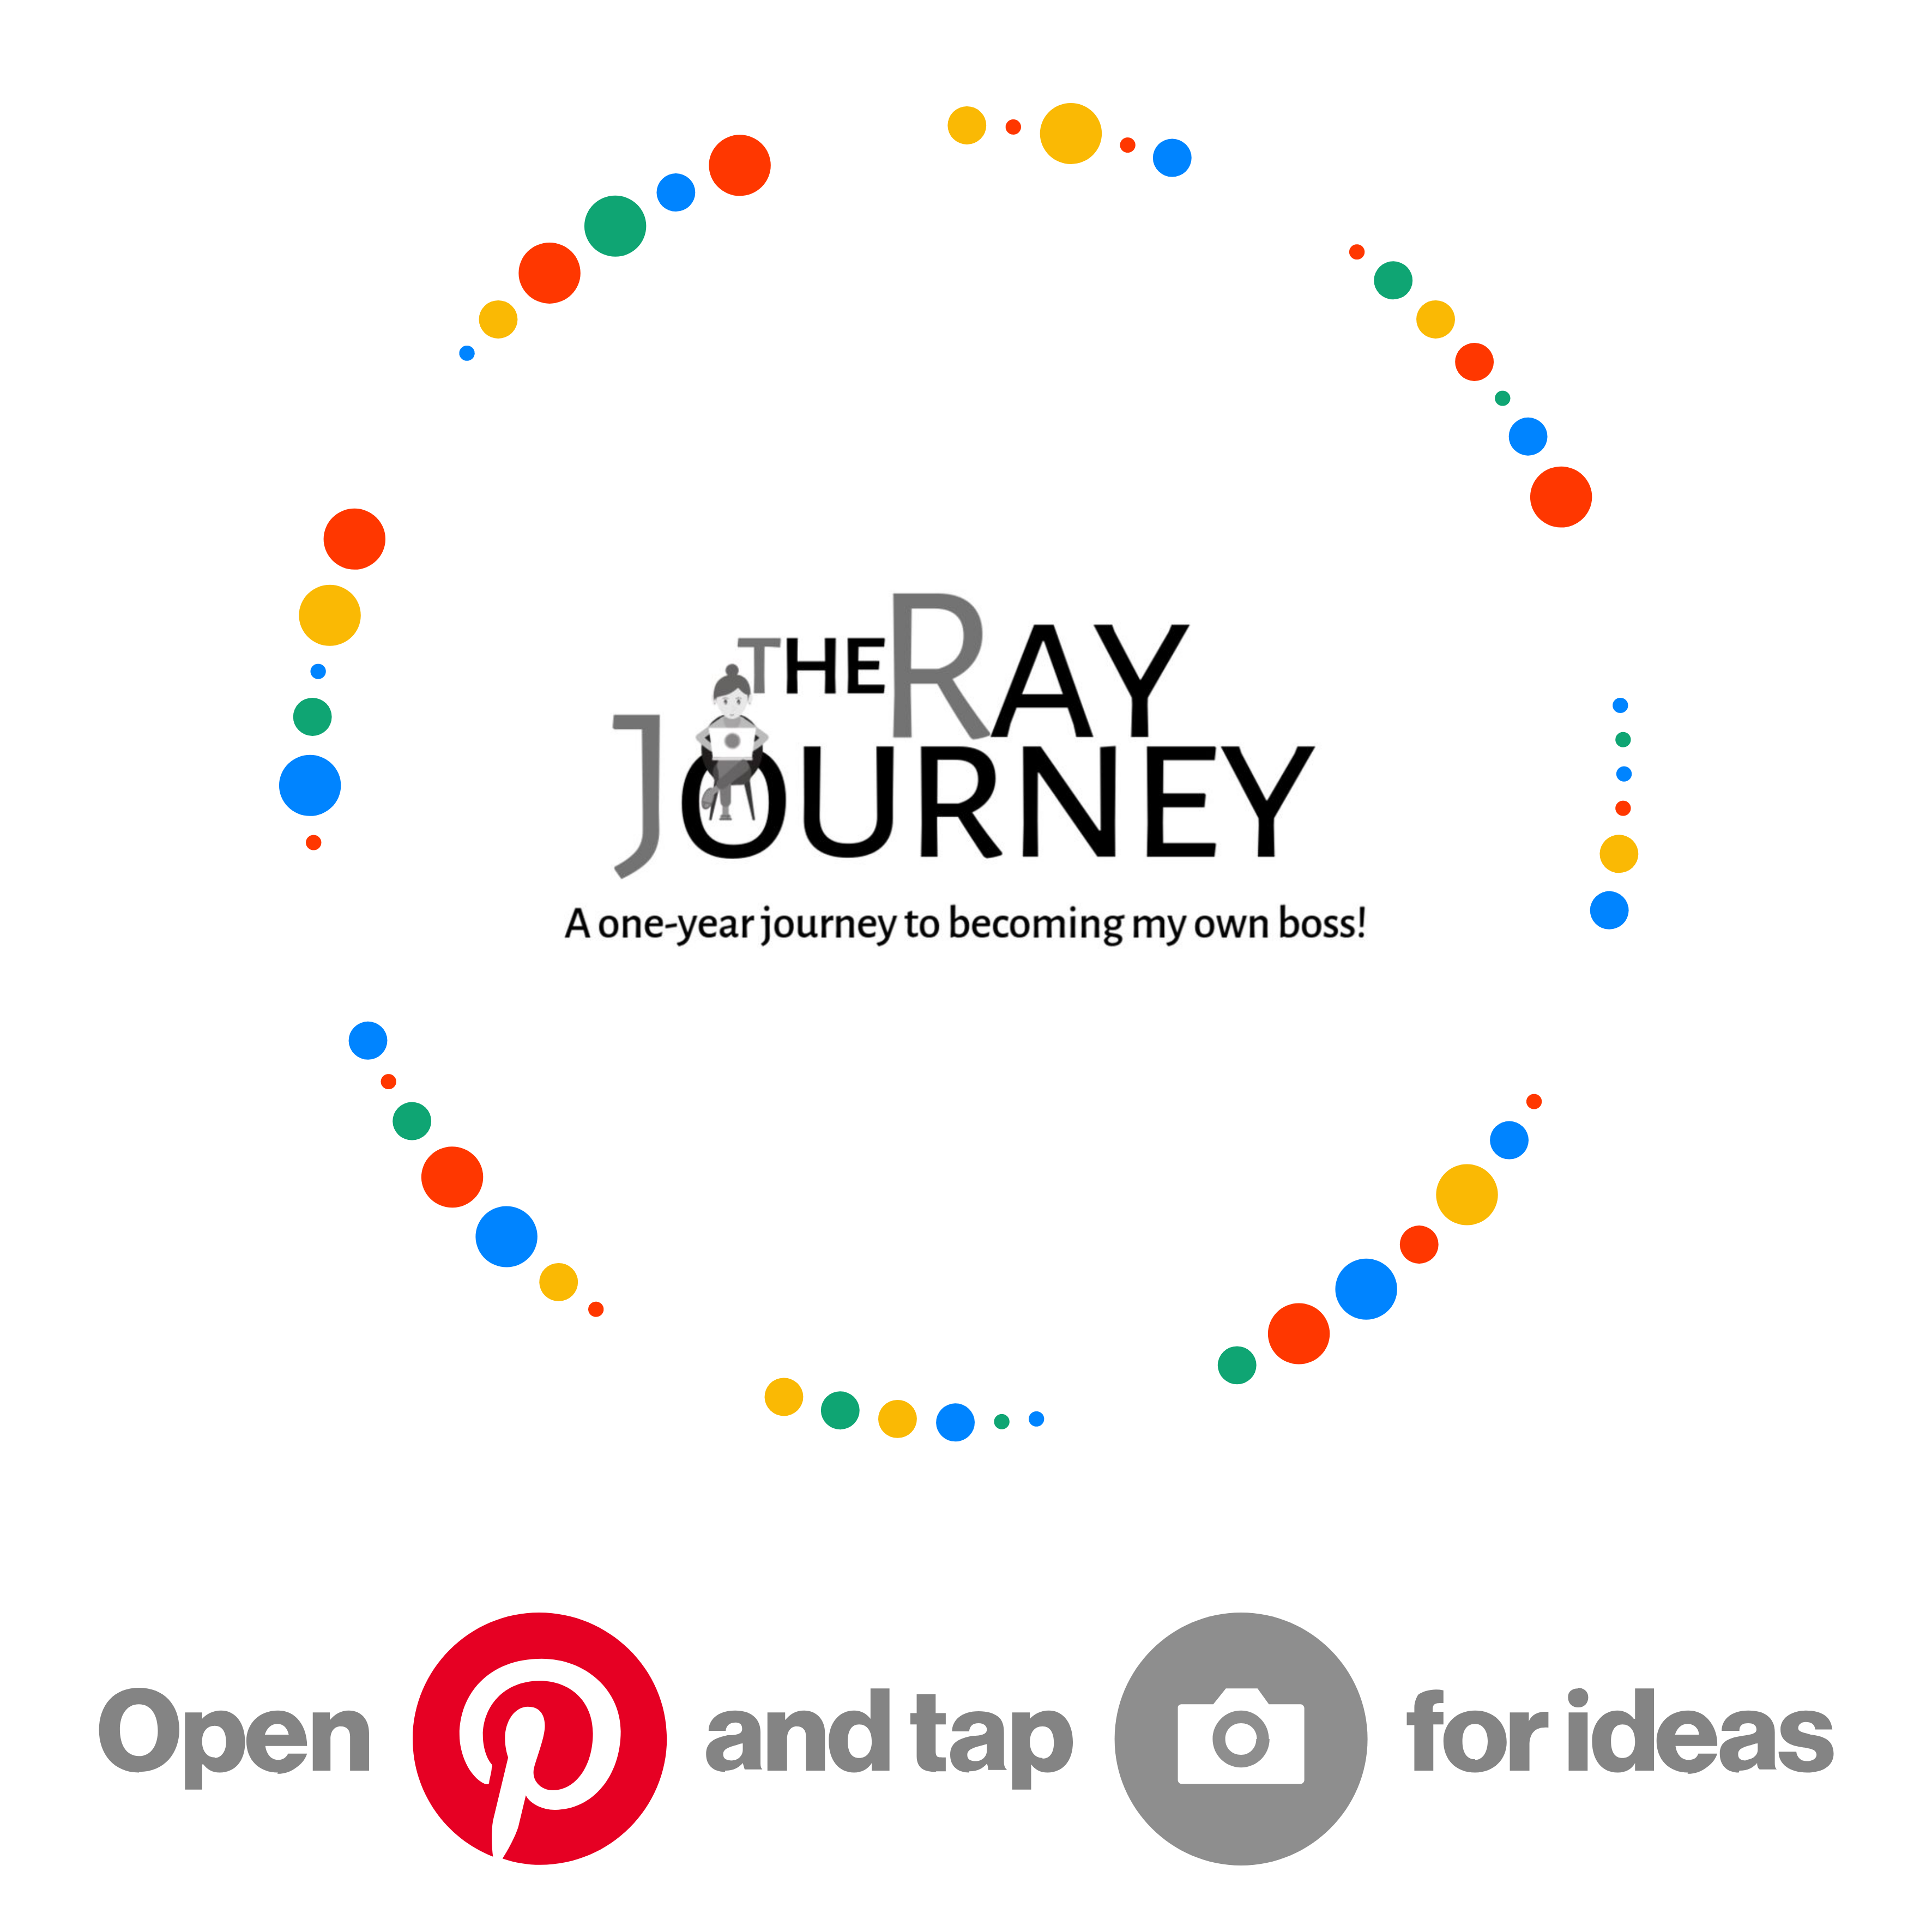 TRJ on Pinterest. Scan the image with your Pinterest camera